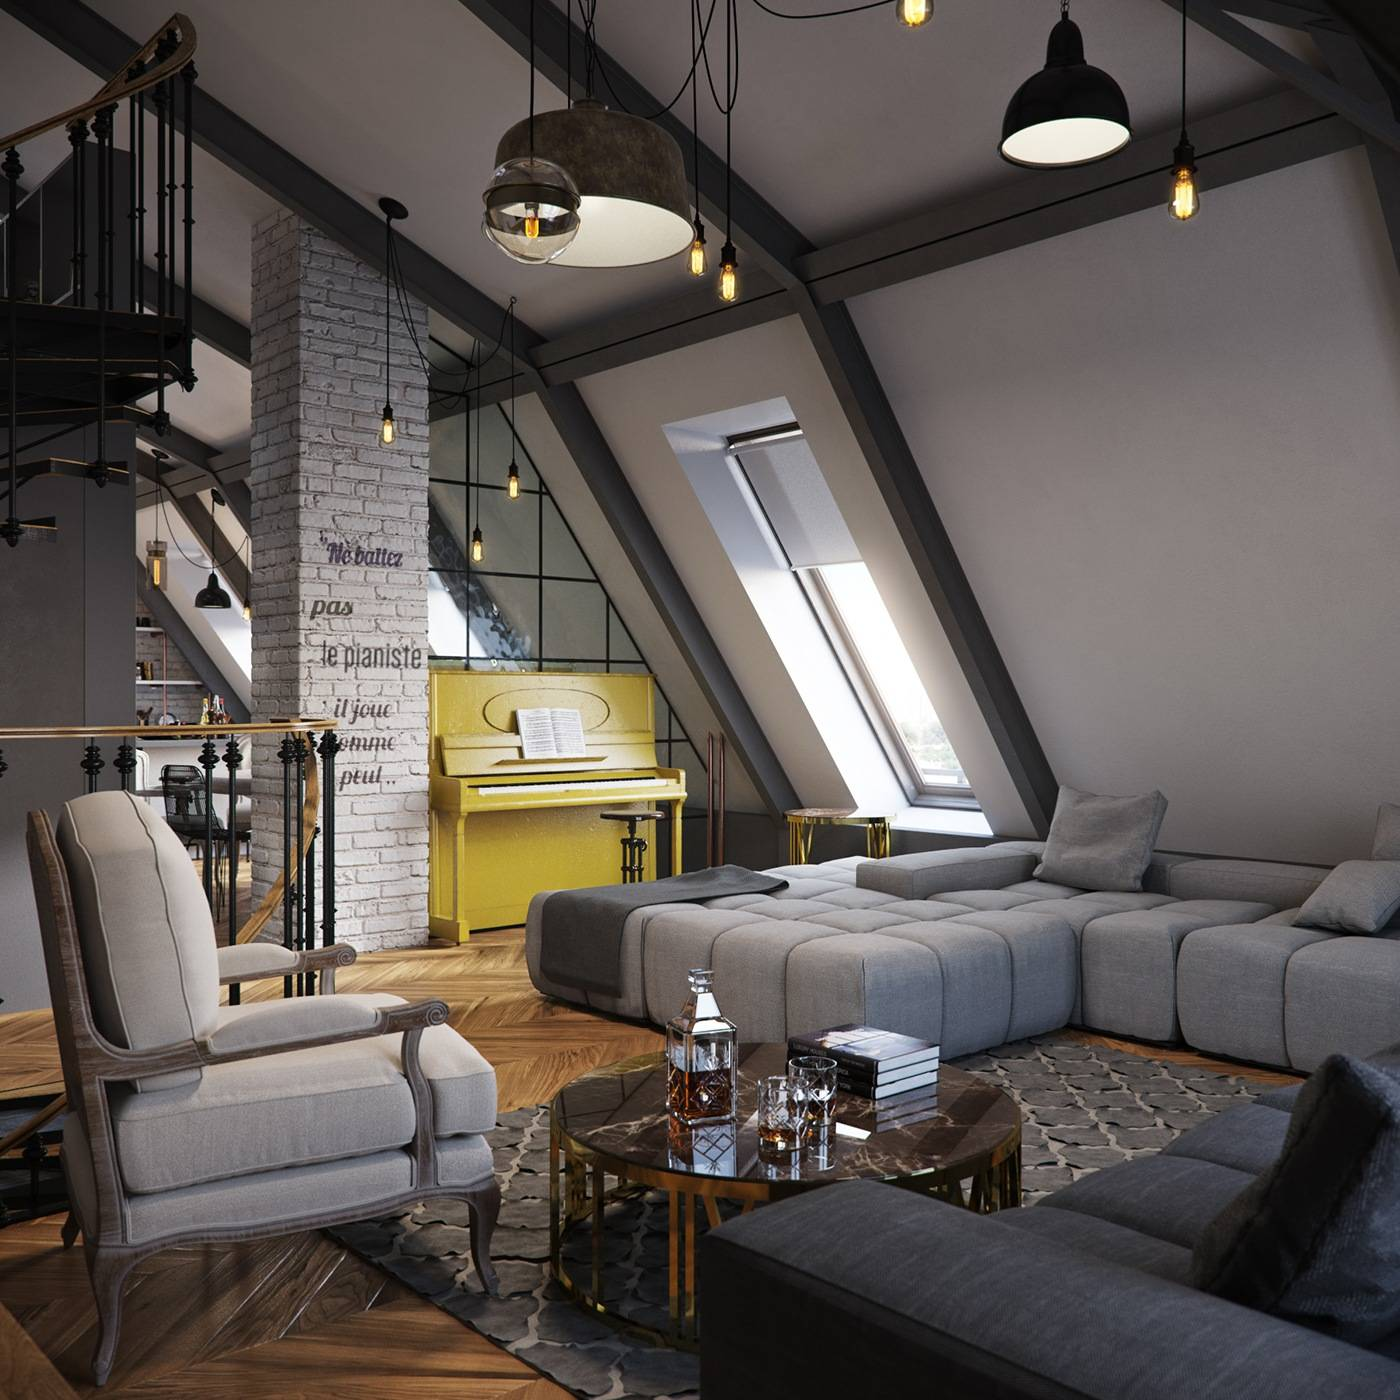 modern loft bedroom ideas elegant three dark colored loft apartments with exposed brick walls of modern loft bedroom ideas